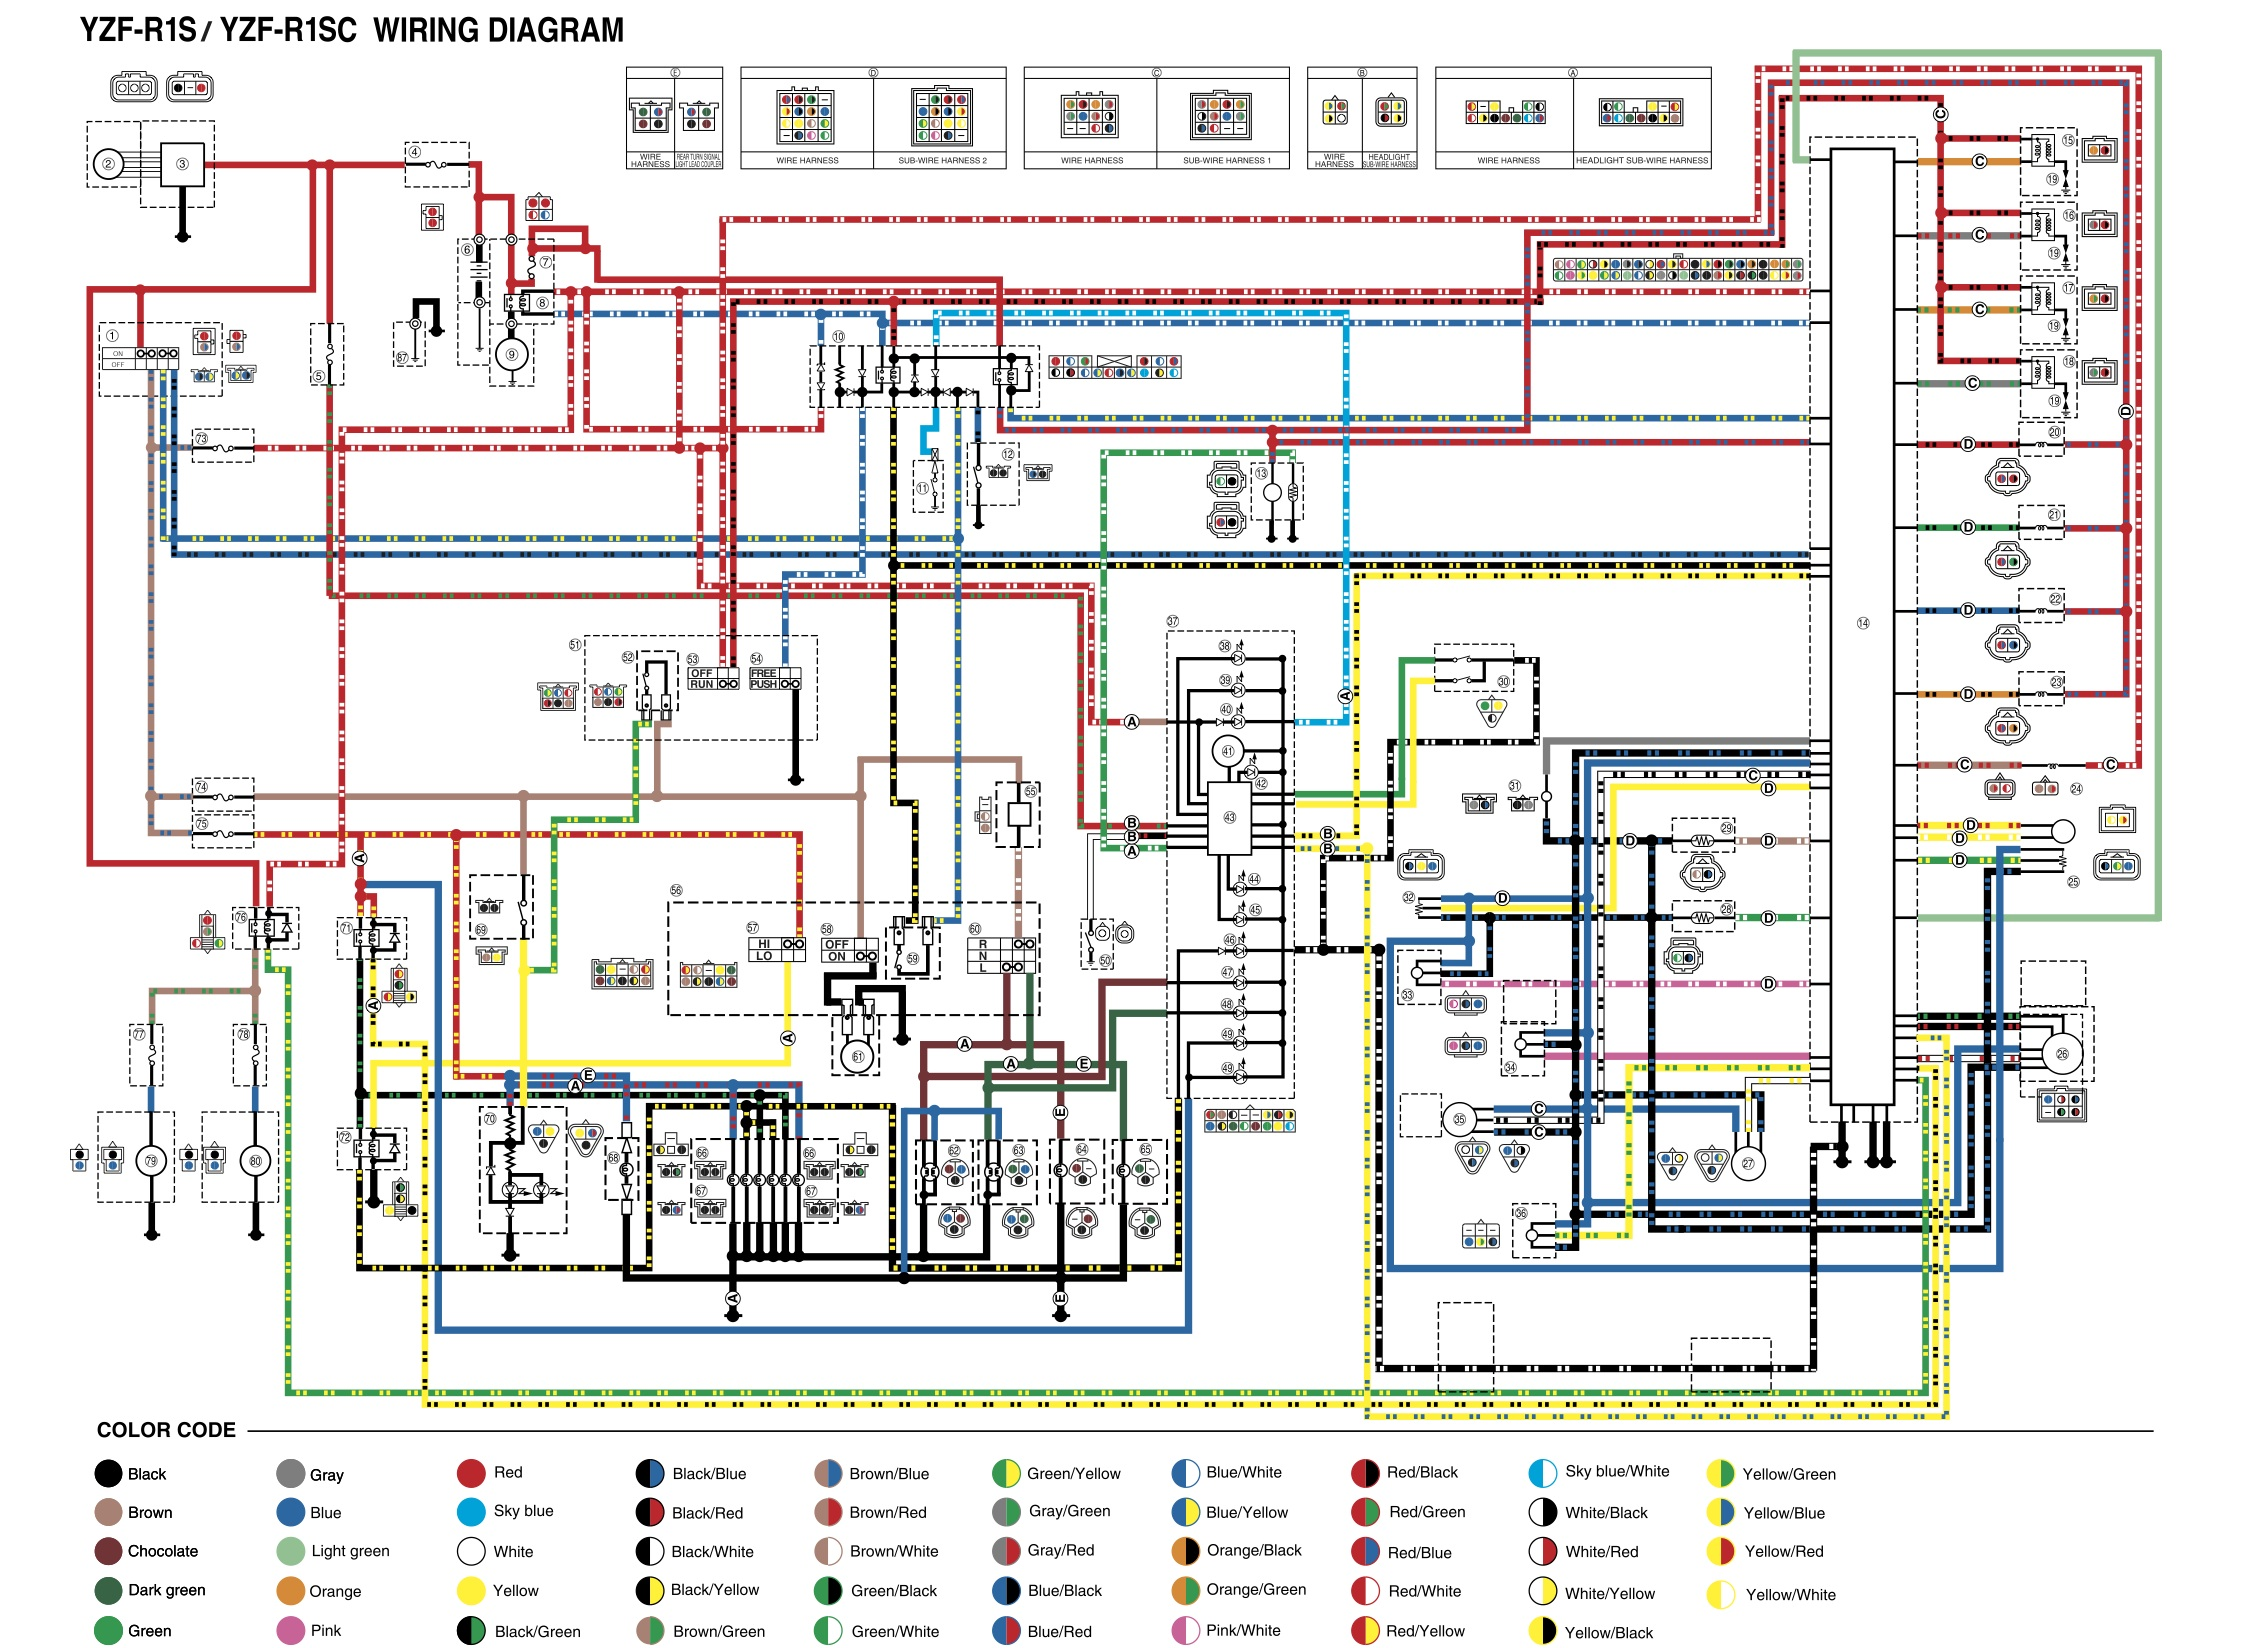 2000 yamaha r6 wiring diagram carrier air conditioner r1 help